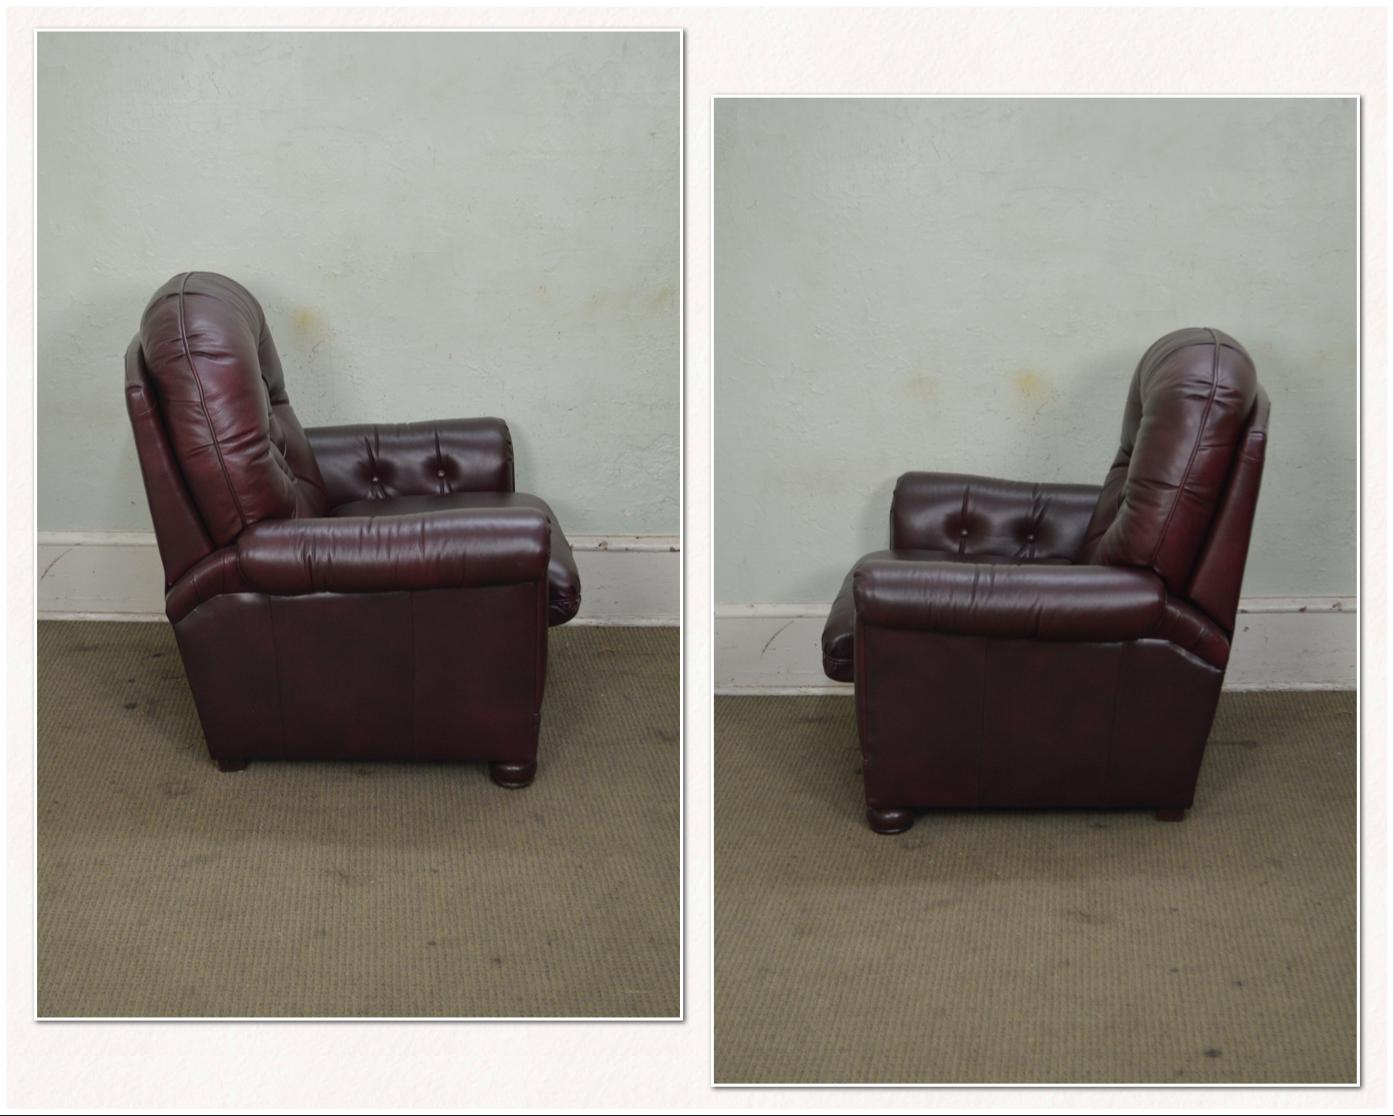 Charmant Hollywood Regency Bradington Young Oxblood Leather Tufted Recliner Club  Chairs W/ Ottomans   A Pair